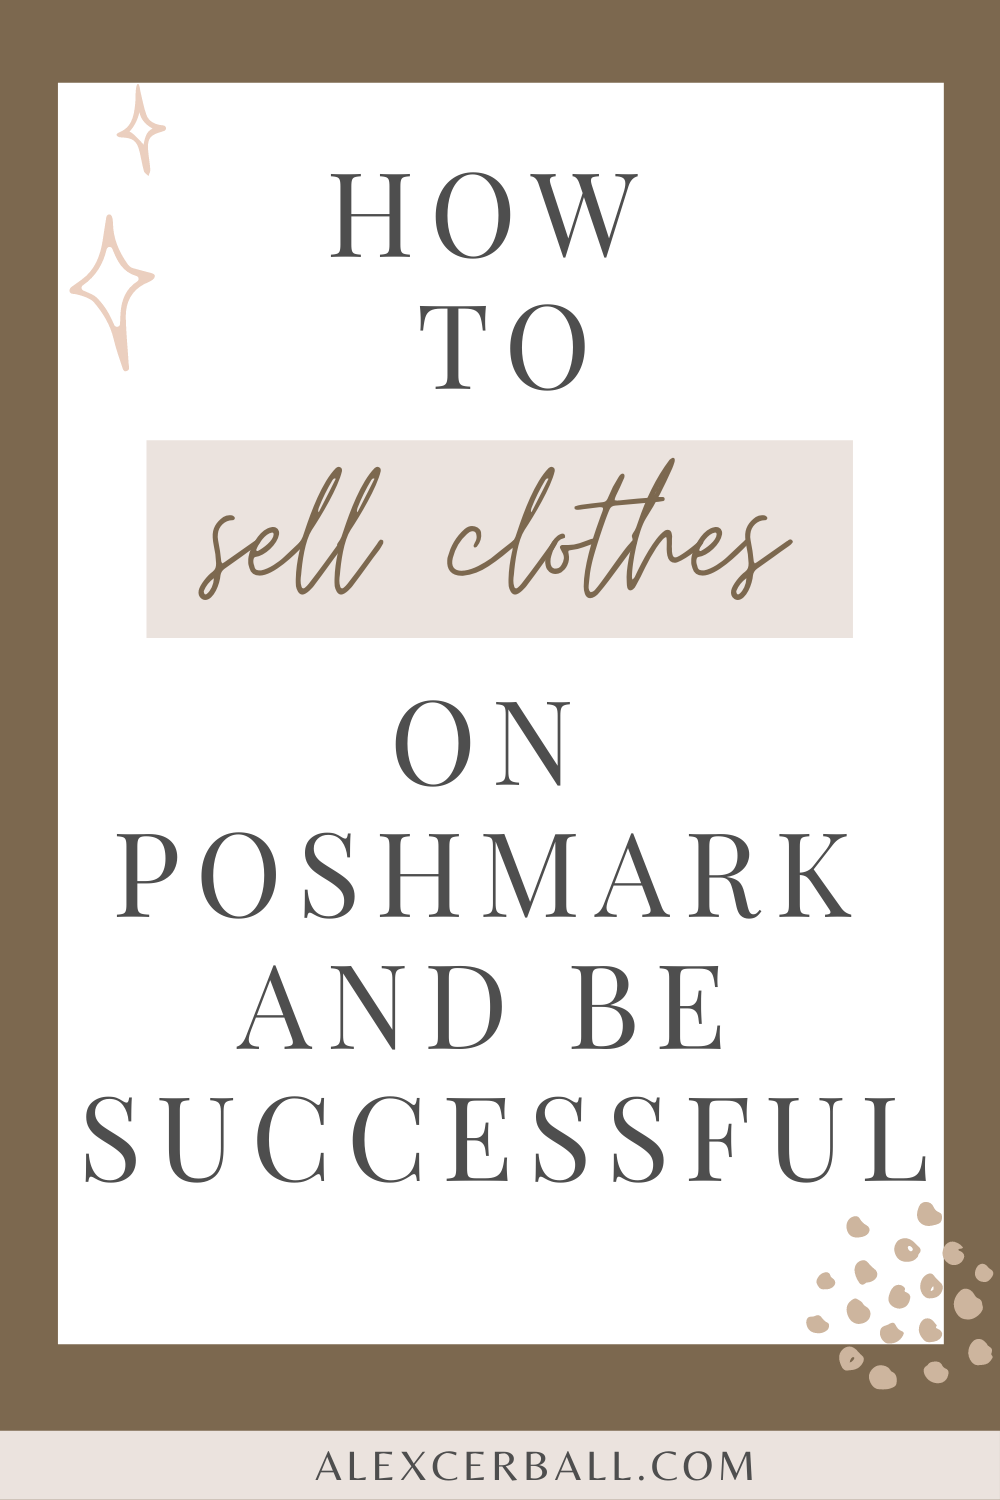 How To Sell Clothes On Poshmark And Be Successful In 2020 Selling Clothes How To Sell Clothes Things To Sell